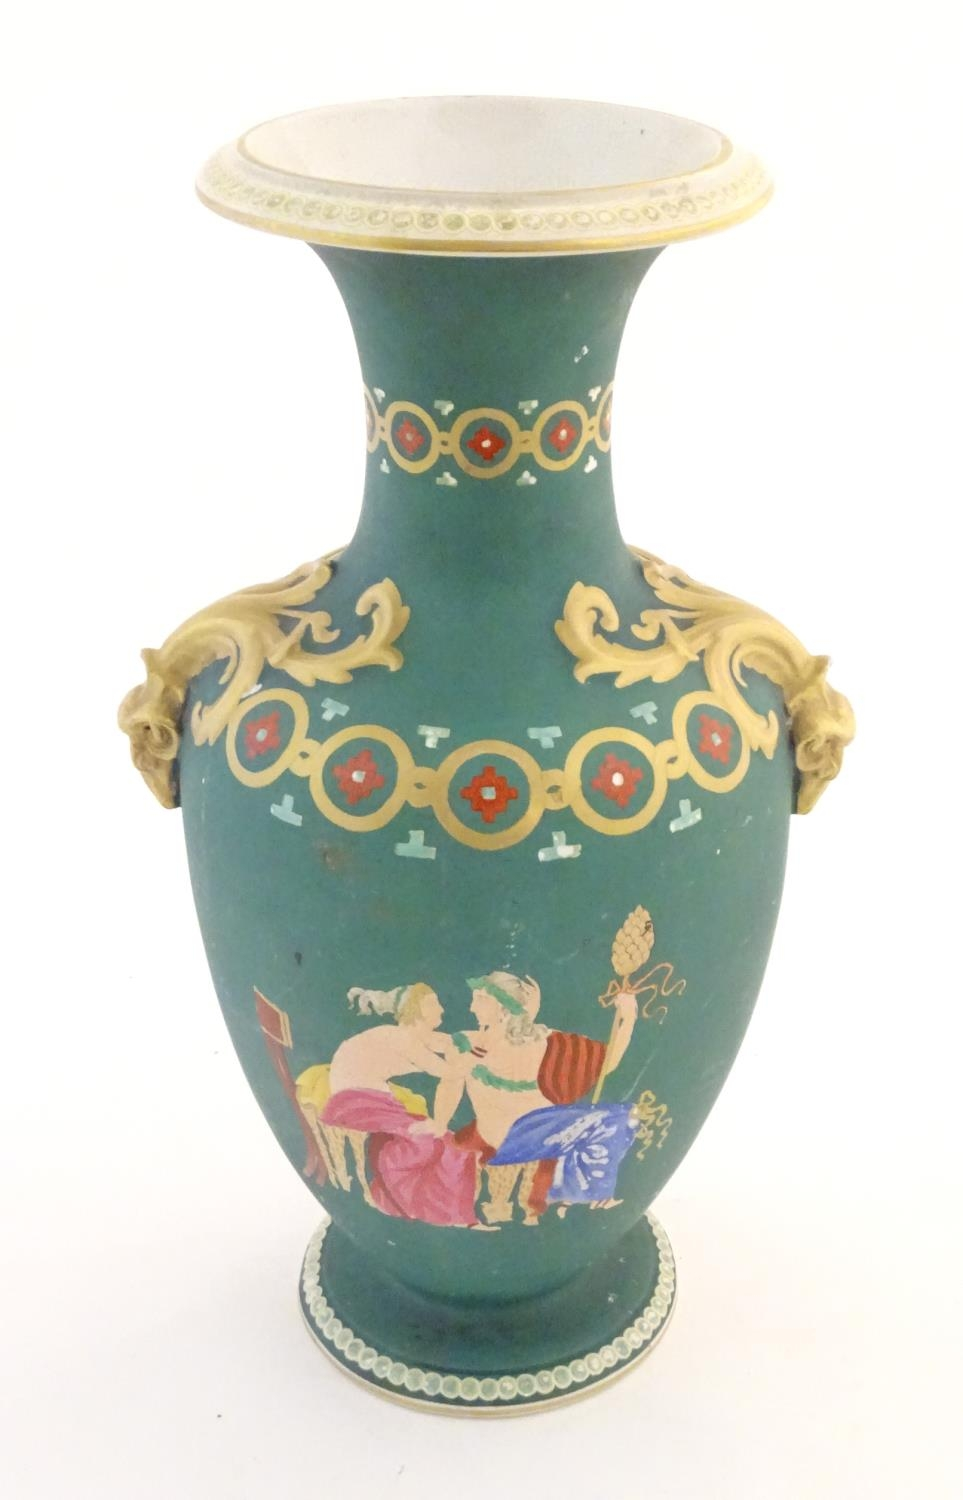 A Prattware baluster vase with Classical decoration depicting a Roman gladiator and chariot etc.